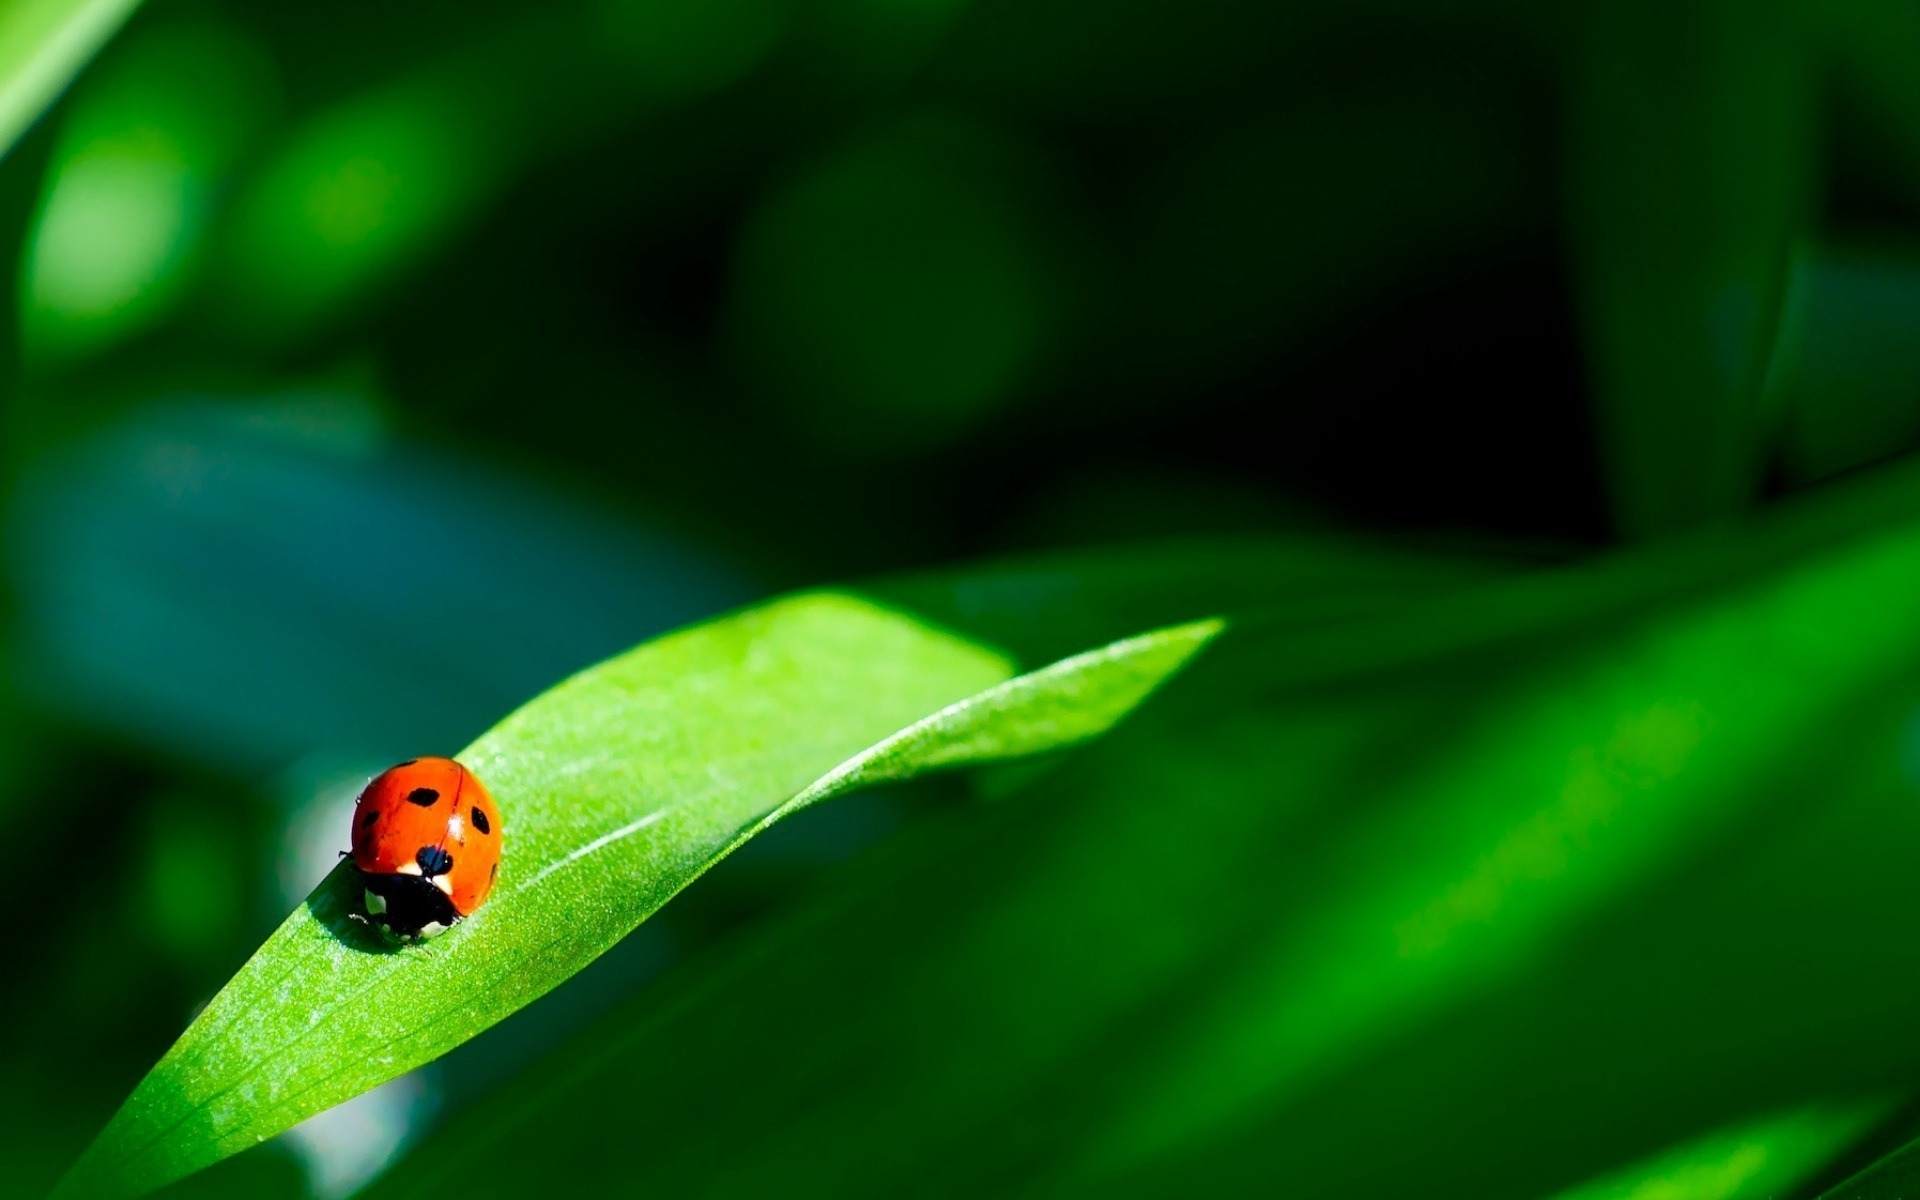 32083 download wallpaper Insects, Ladybugs screensavers and pictures for free